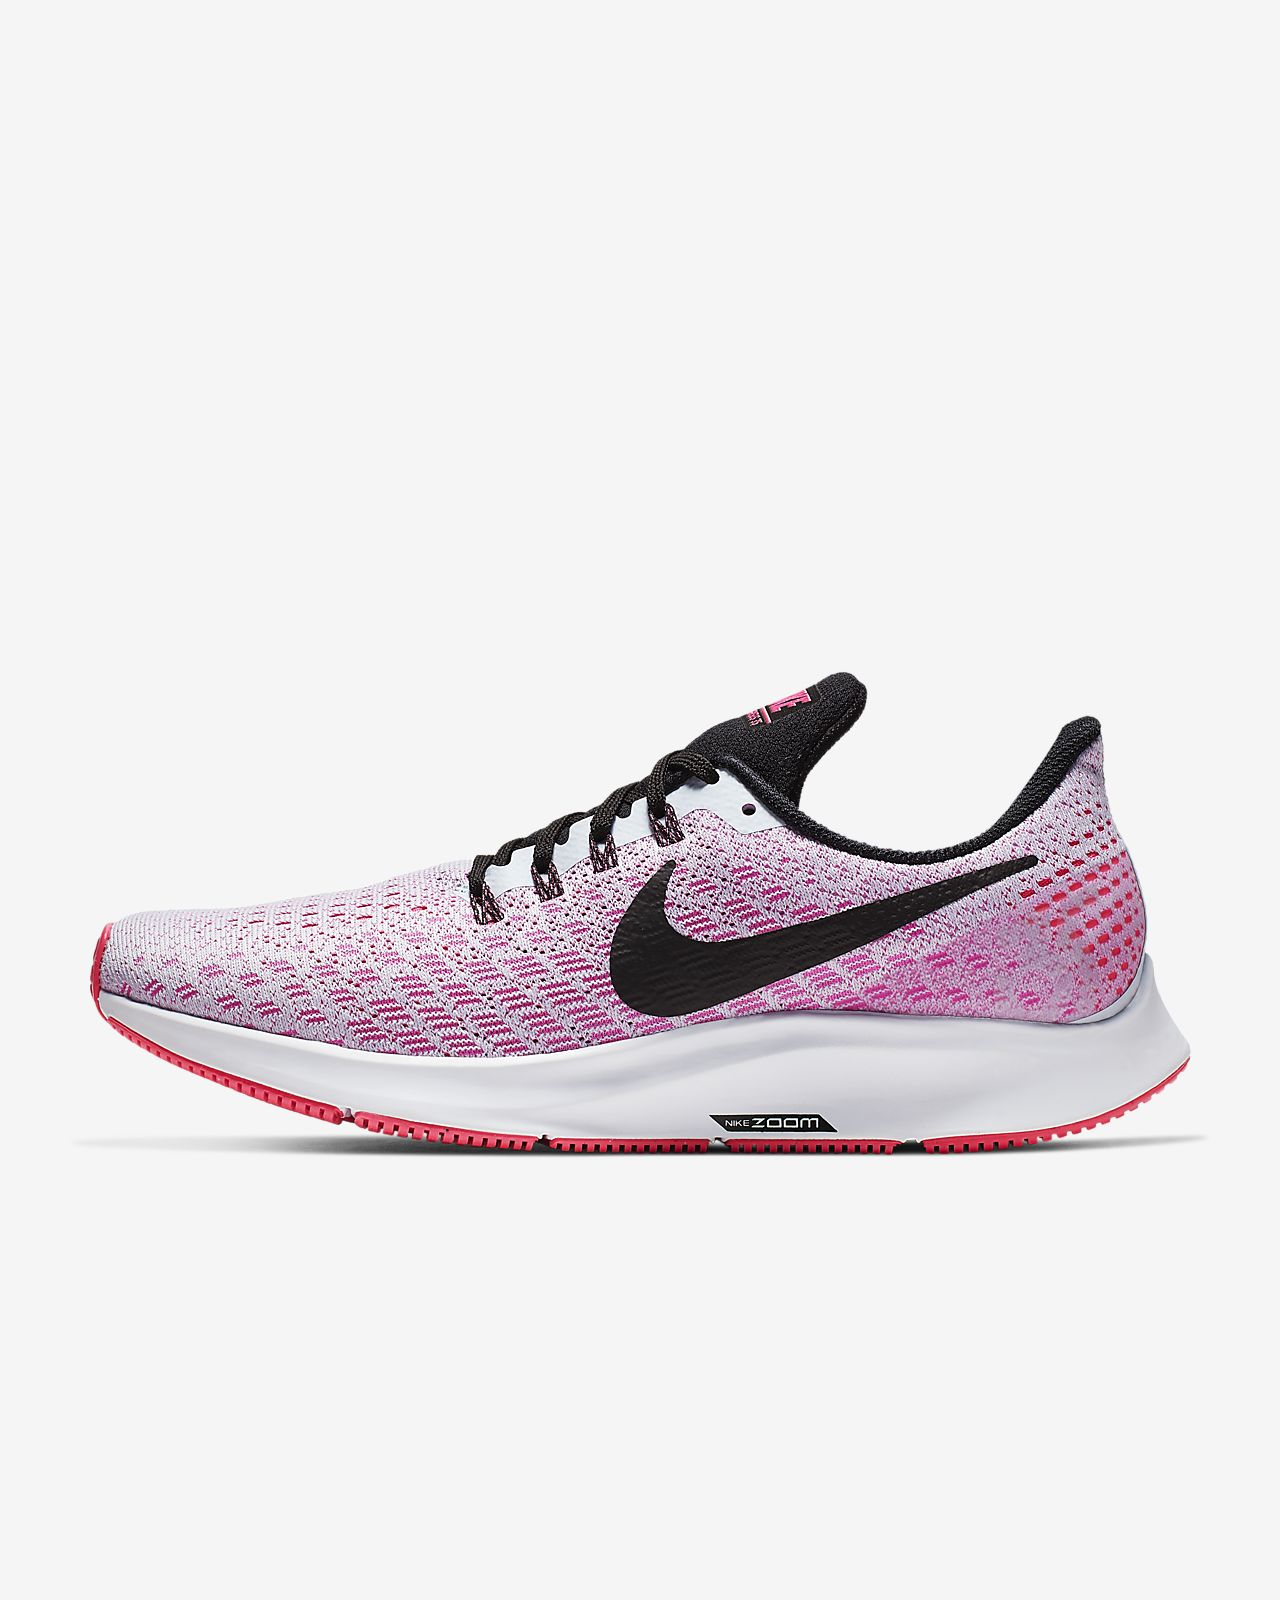 29a0096d5c2 Nike Air Zoom Pegasus 35 Women s Running Shoe. Nike.com